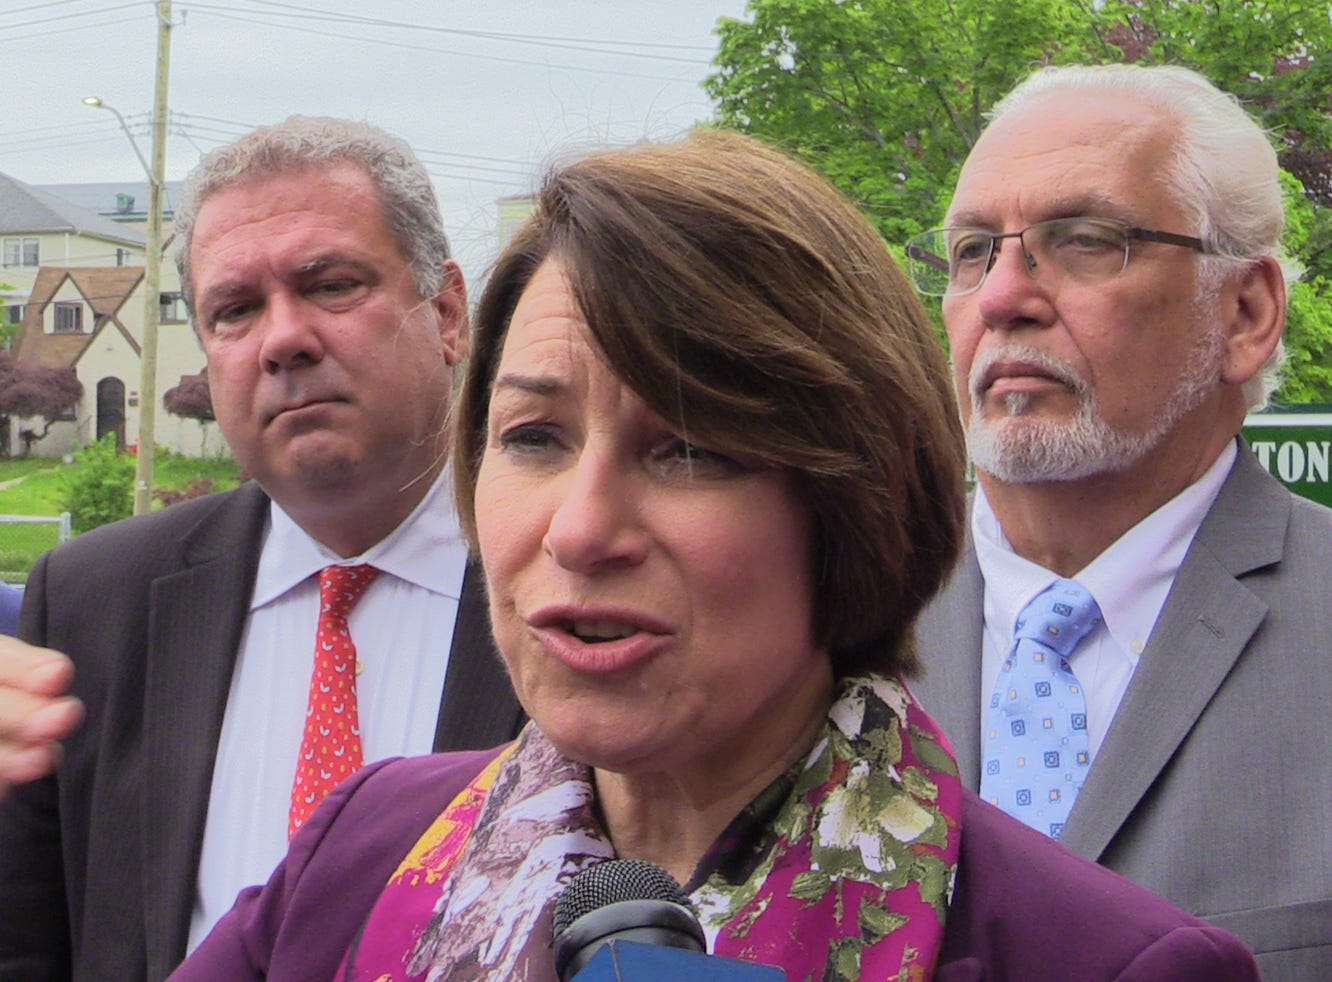 U.S. Sen. Amy Klobuchar (D-Minn.), a Democratic presidential candidate, delivers remarks after a tour of Gorton High School in Yonkers, May 10, 2019.